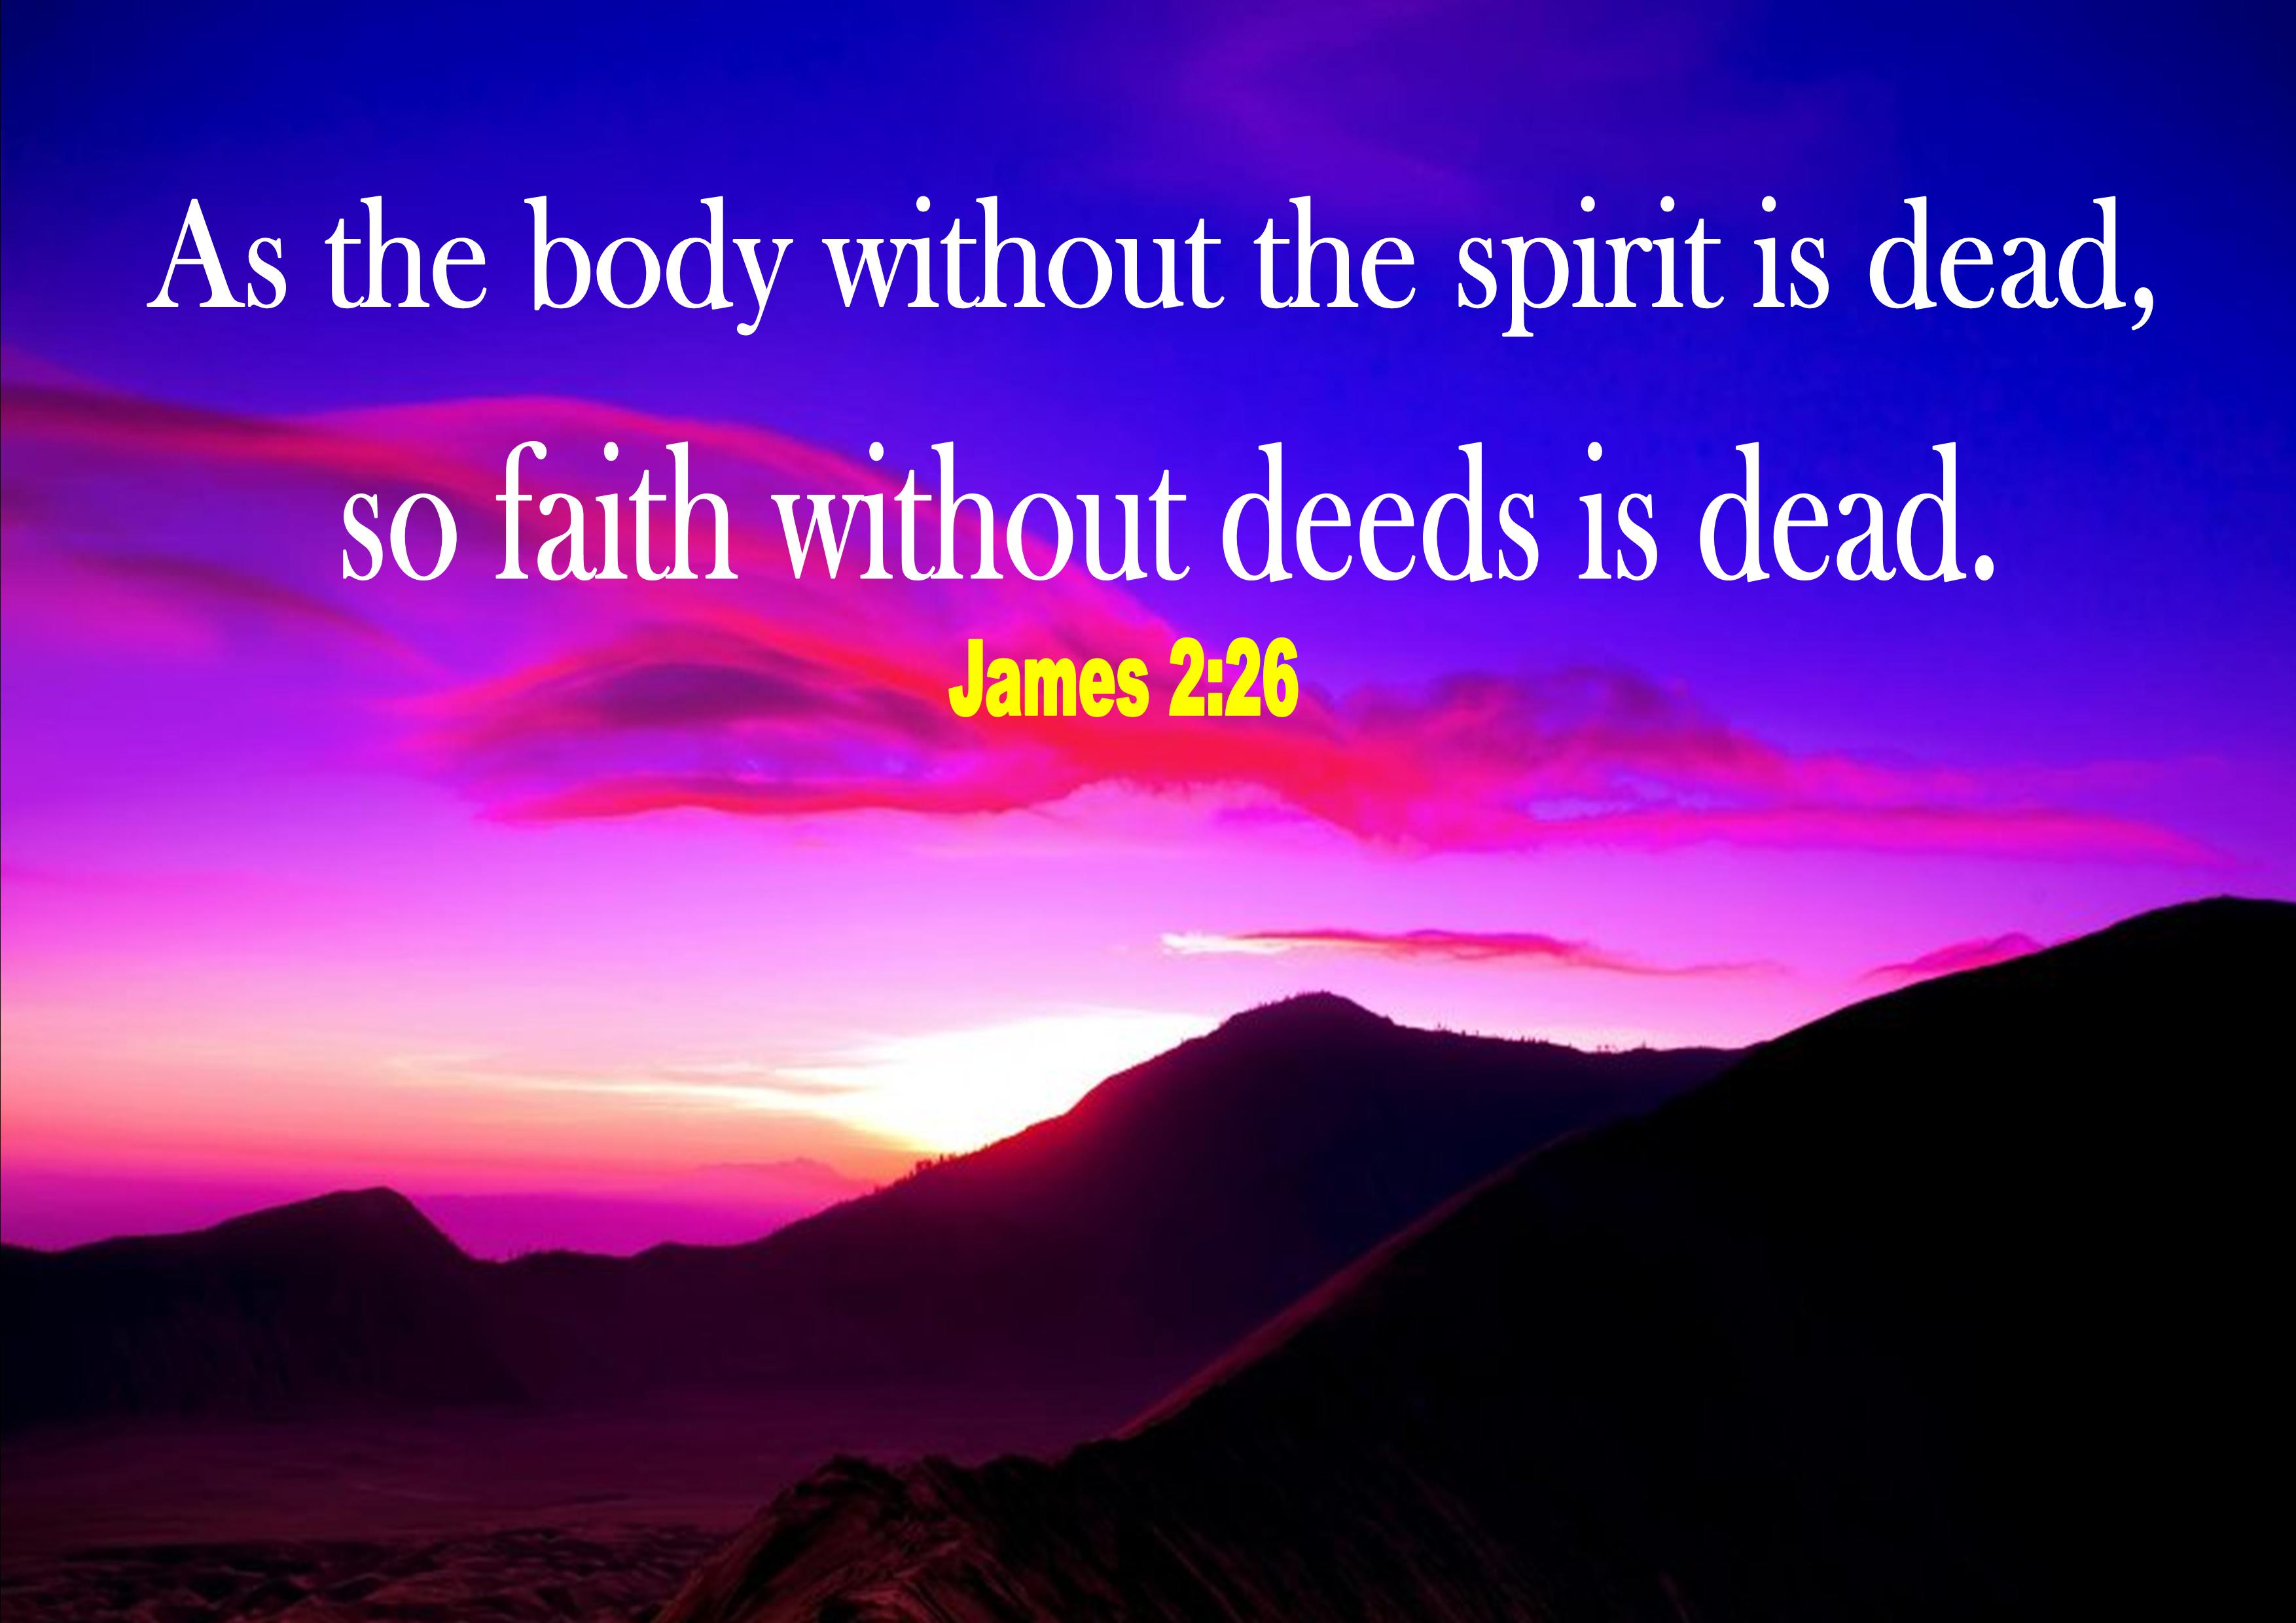 About faith and deeds 2